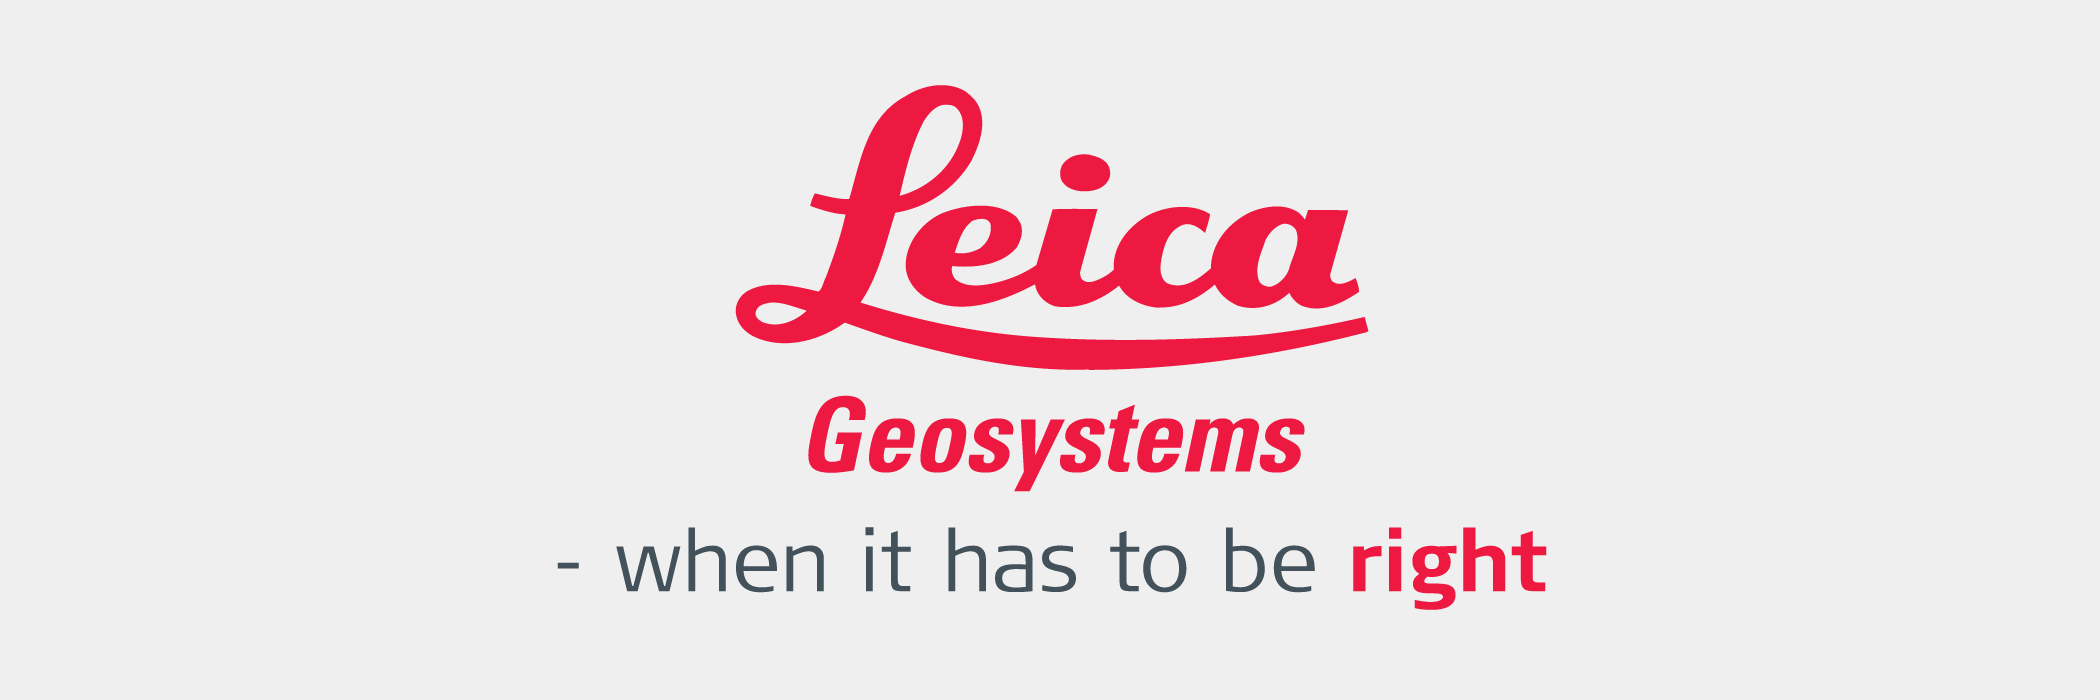 Leica Geosystems : When it has to be right